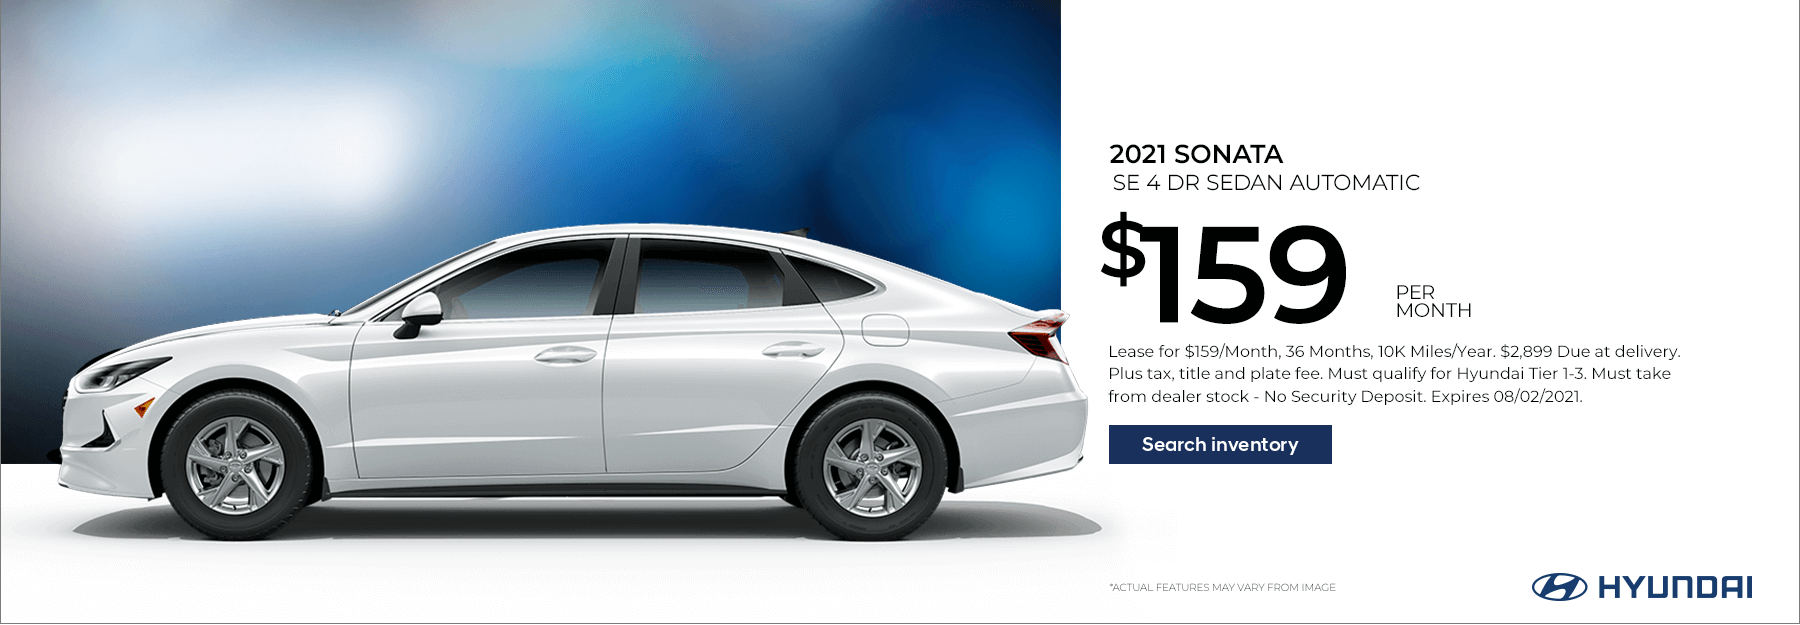 Lease a New 2021 Sonata SE for $159/Month for 36 Months